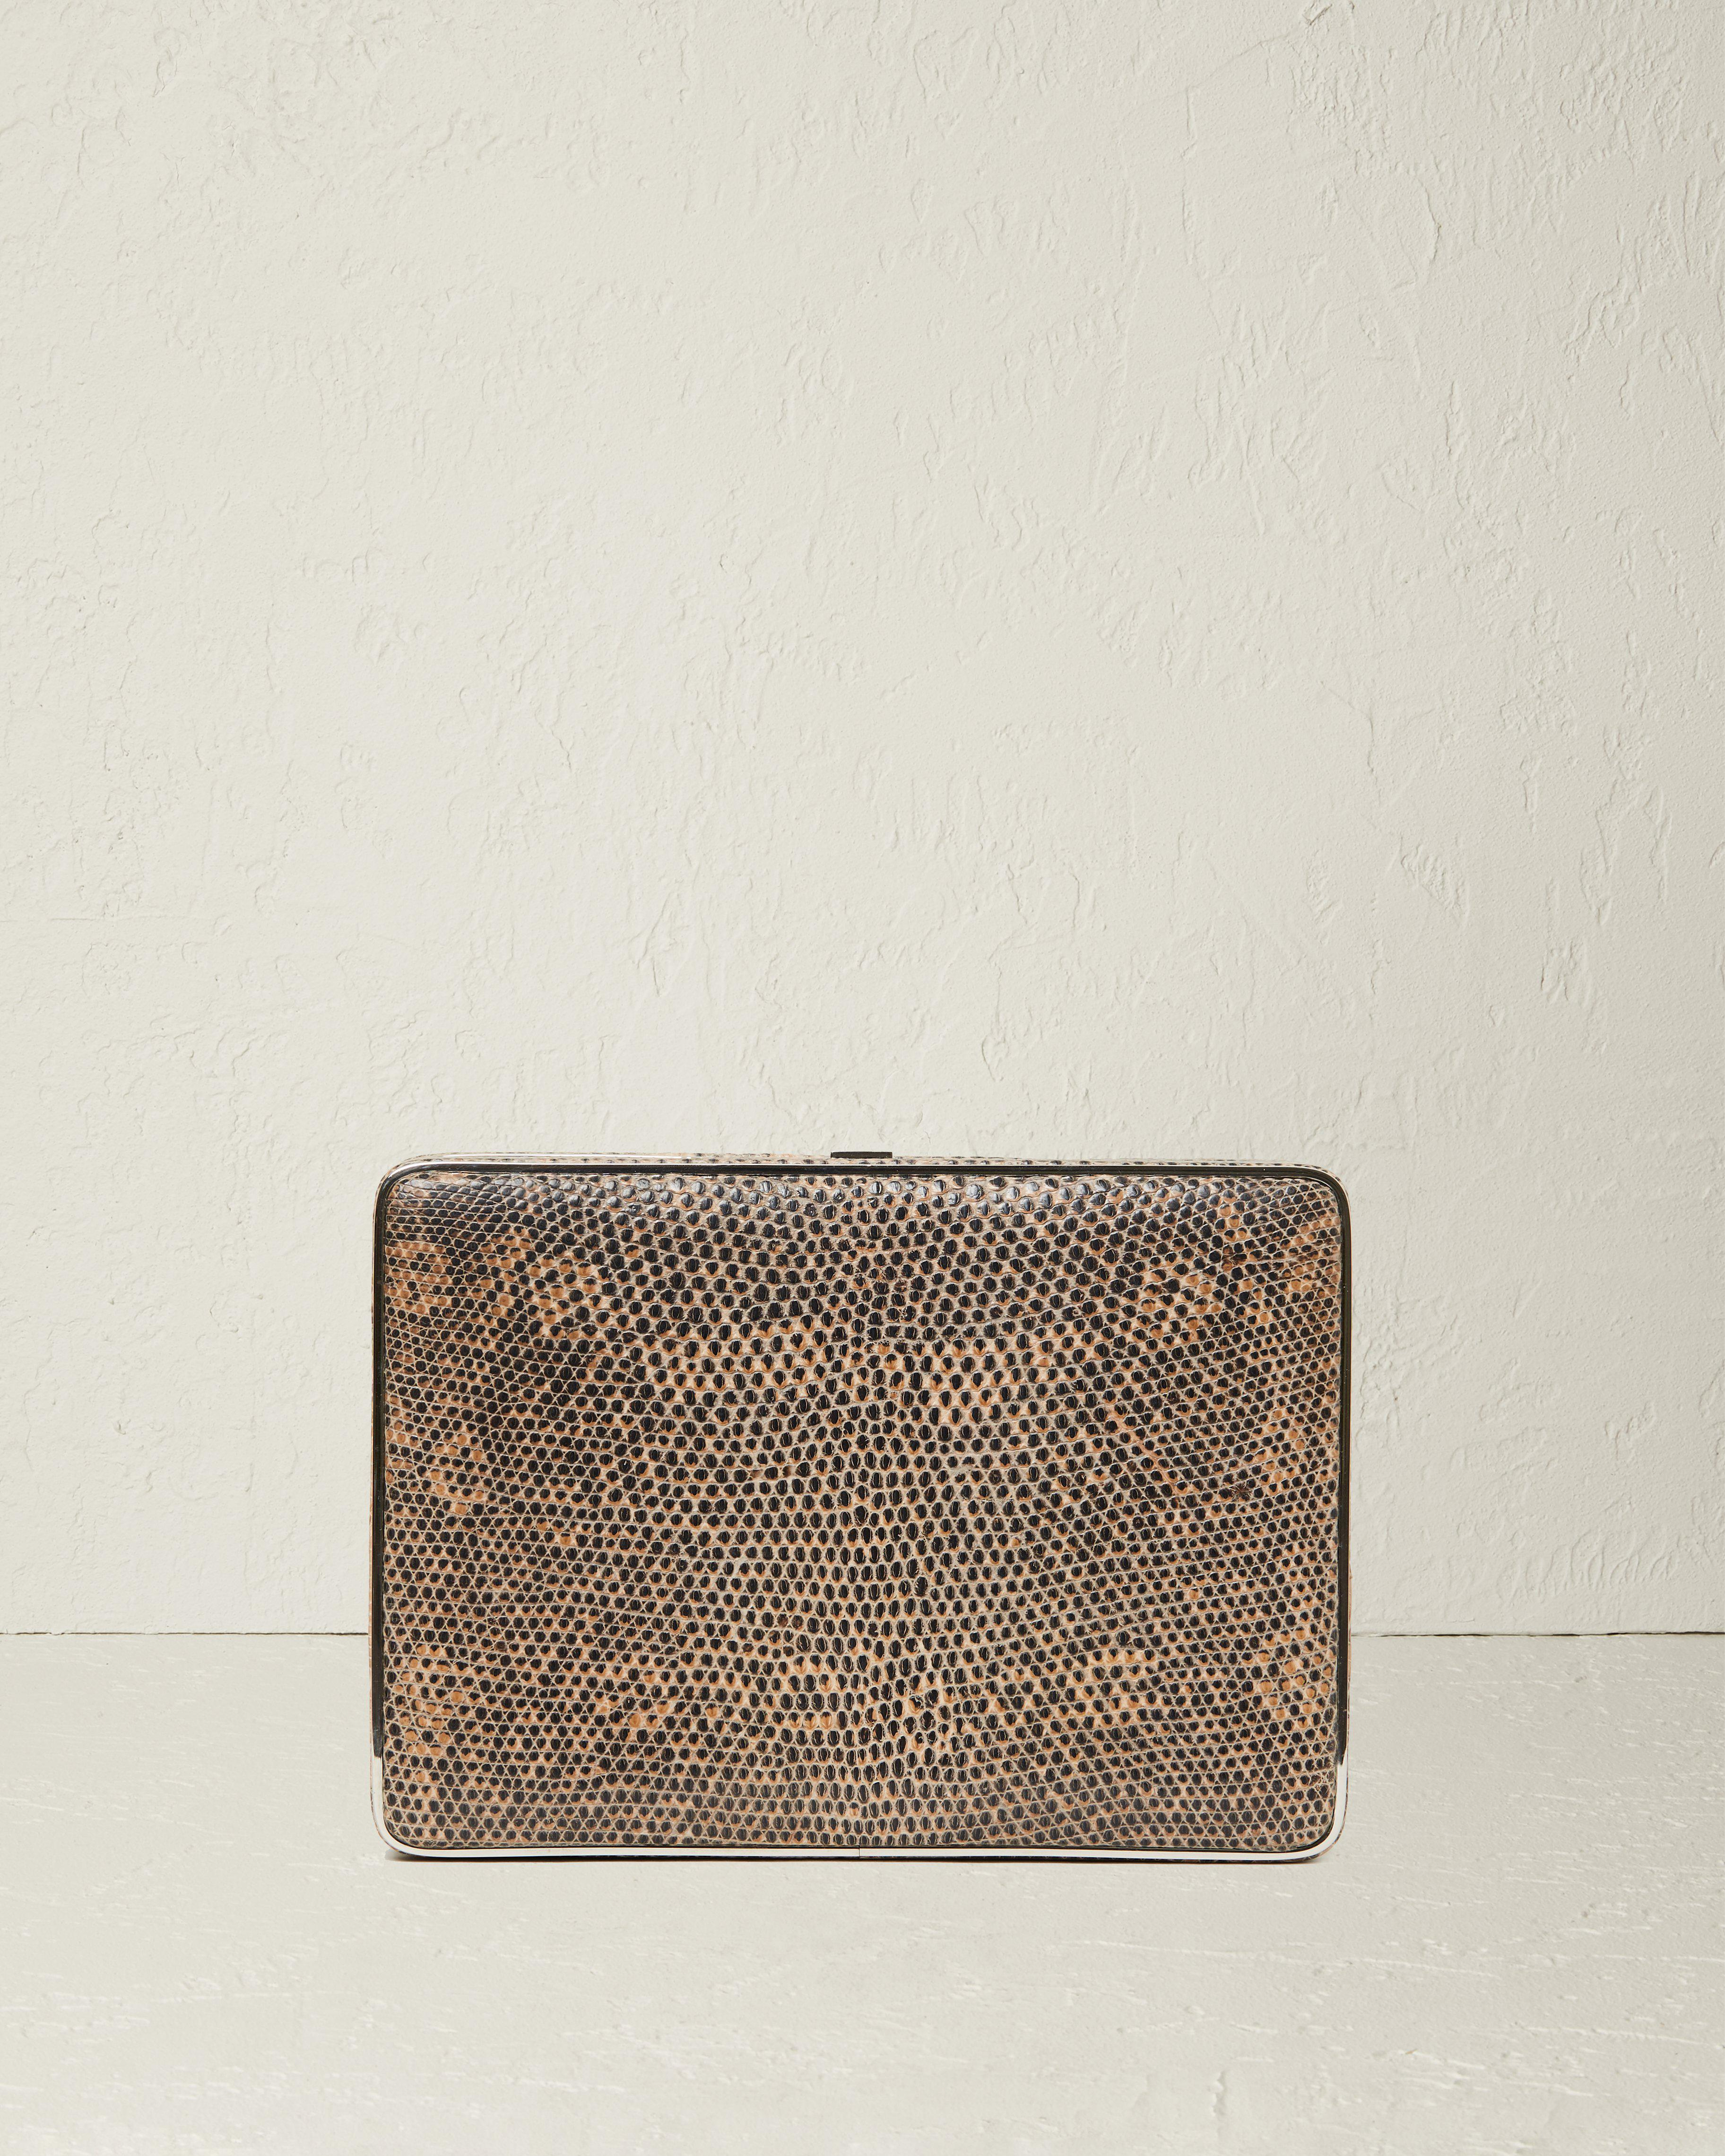 The Square Compact Case in Lizard